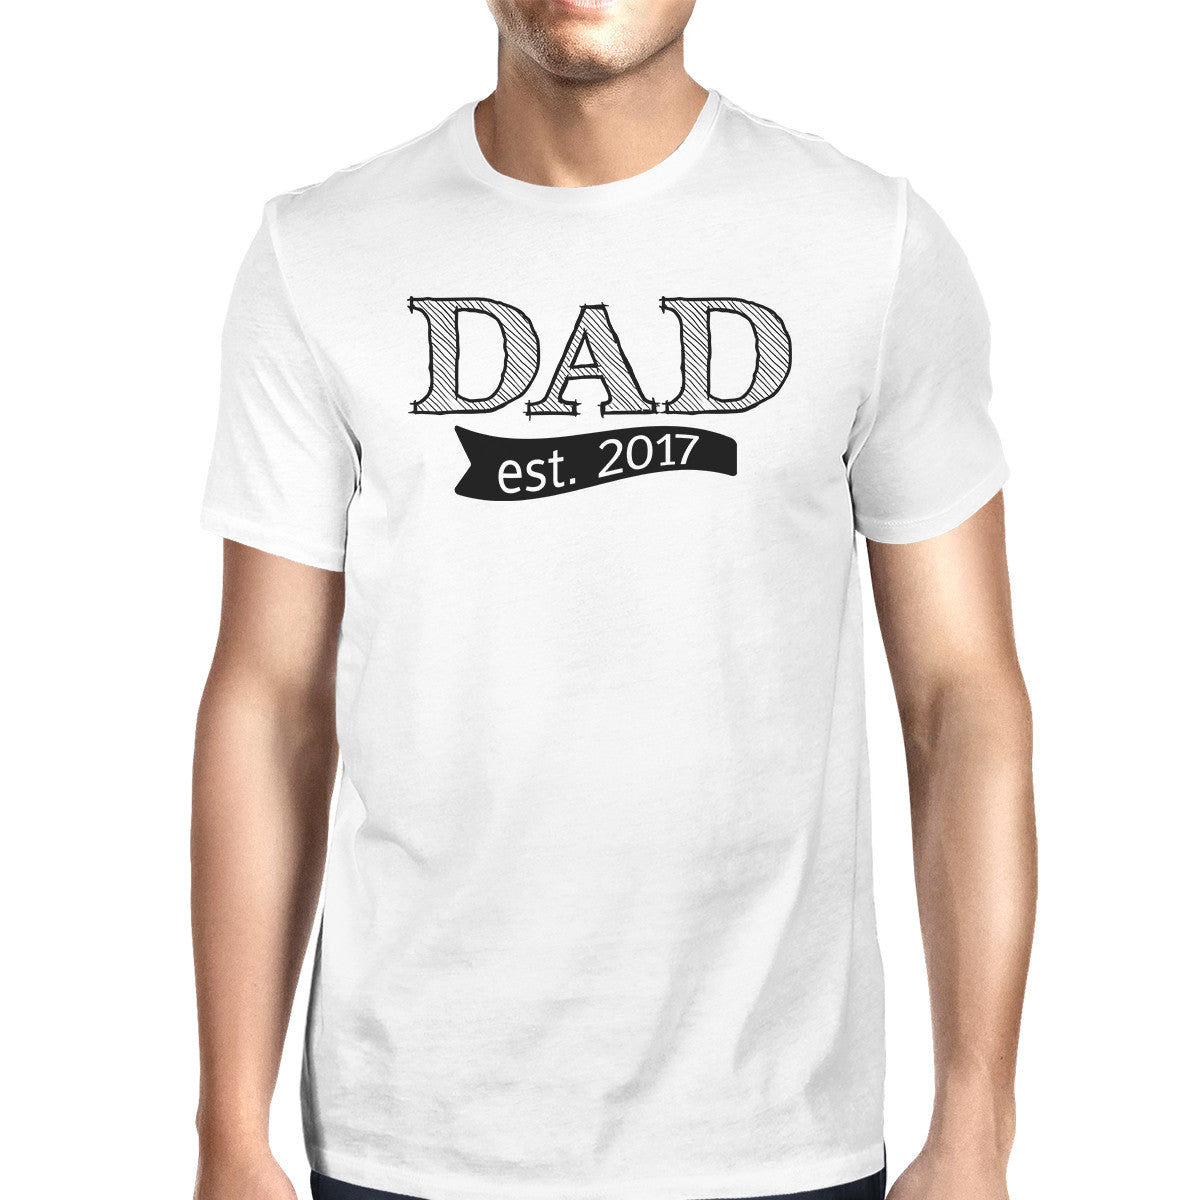 1564b0b8 Dad Est 2017 White T-shirt For Men Fathers Day Gifts For New Dads ...